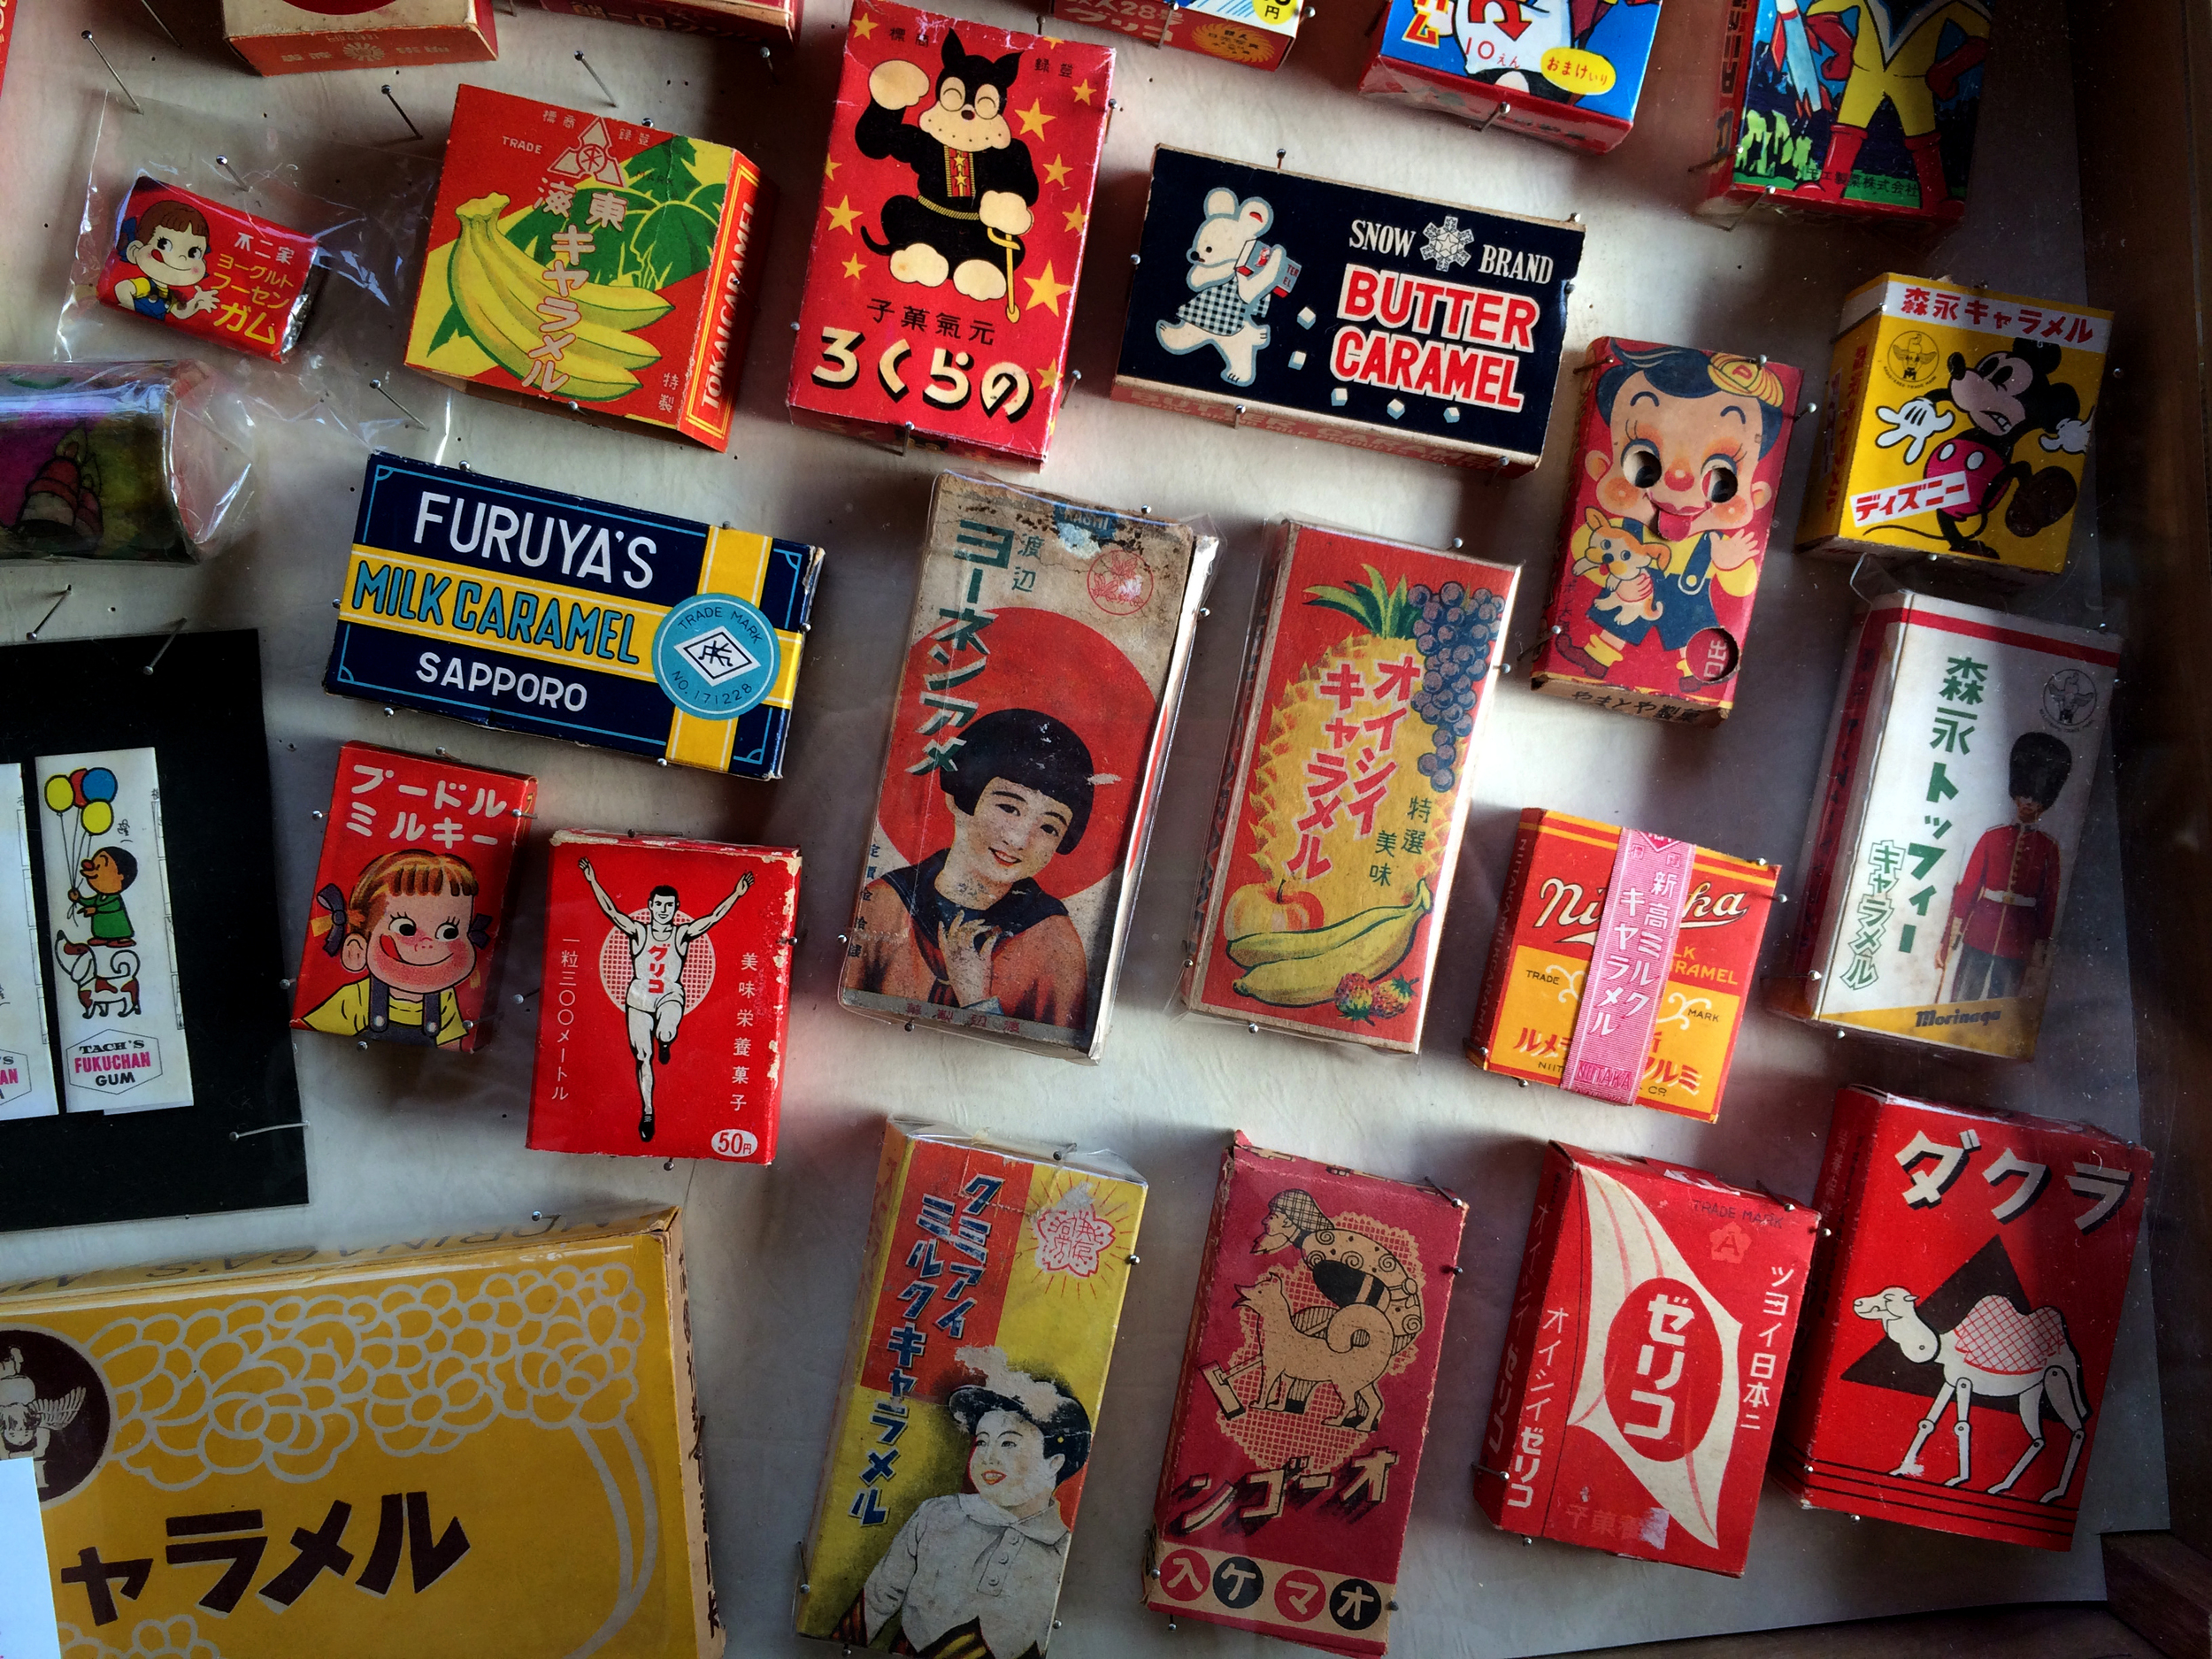 We went to Showa Museum in Otaku. Iconic Showa era candy packages are show cased in the drawer of classic writing desk. Some packages are still around..!